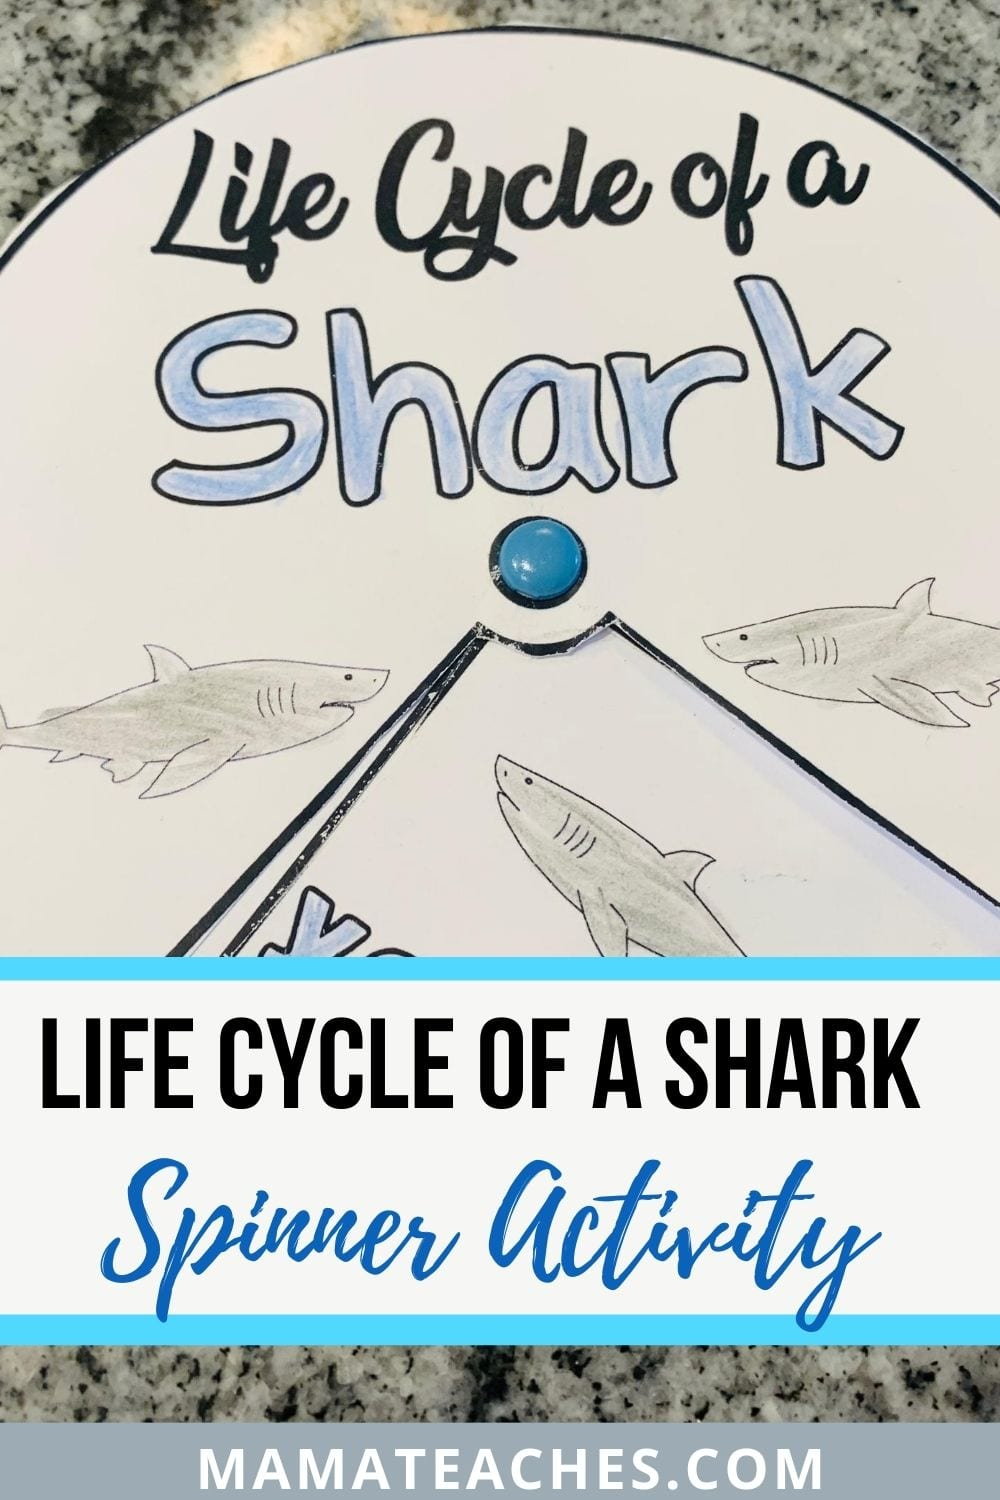 Life Cycle of a Shark Spinner Activity - MamaTeaches